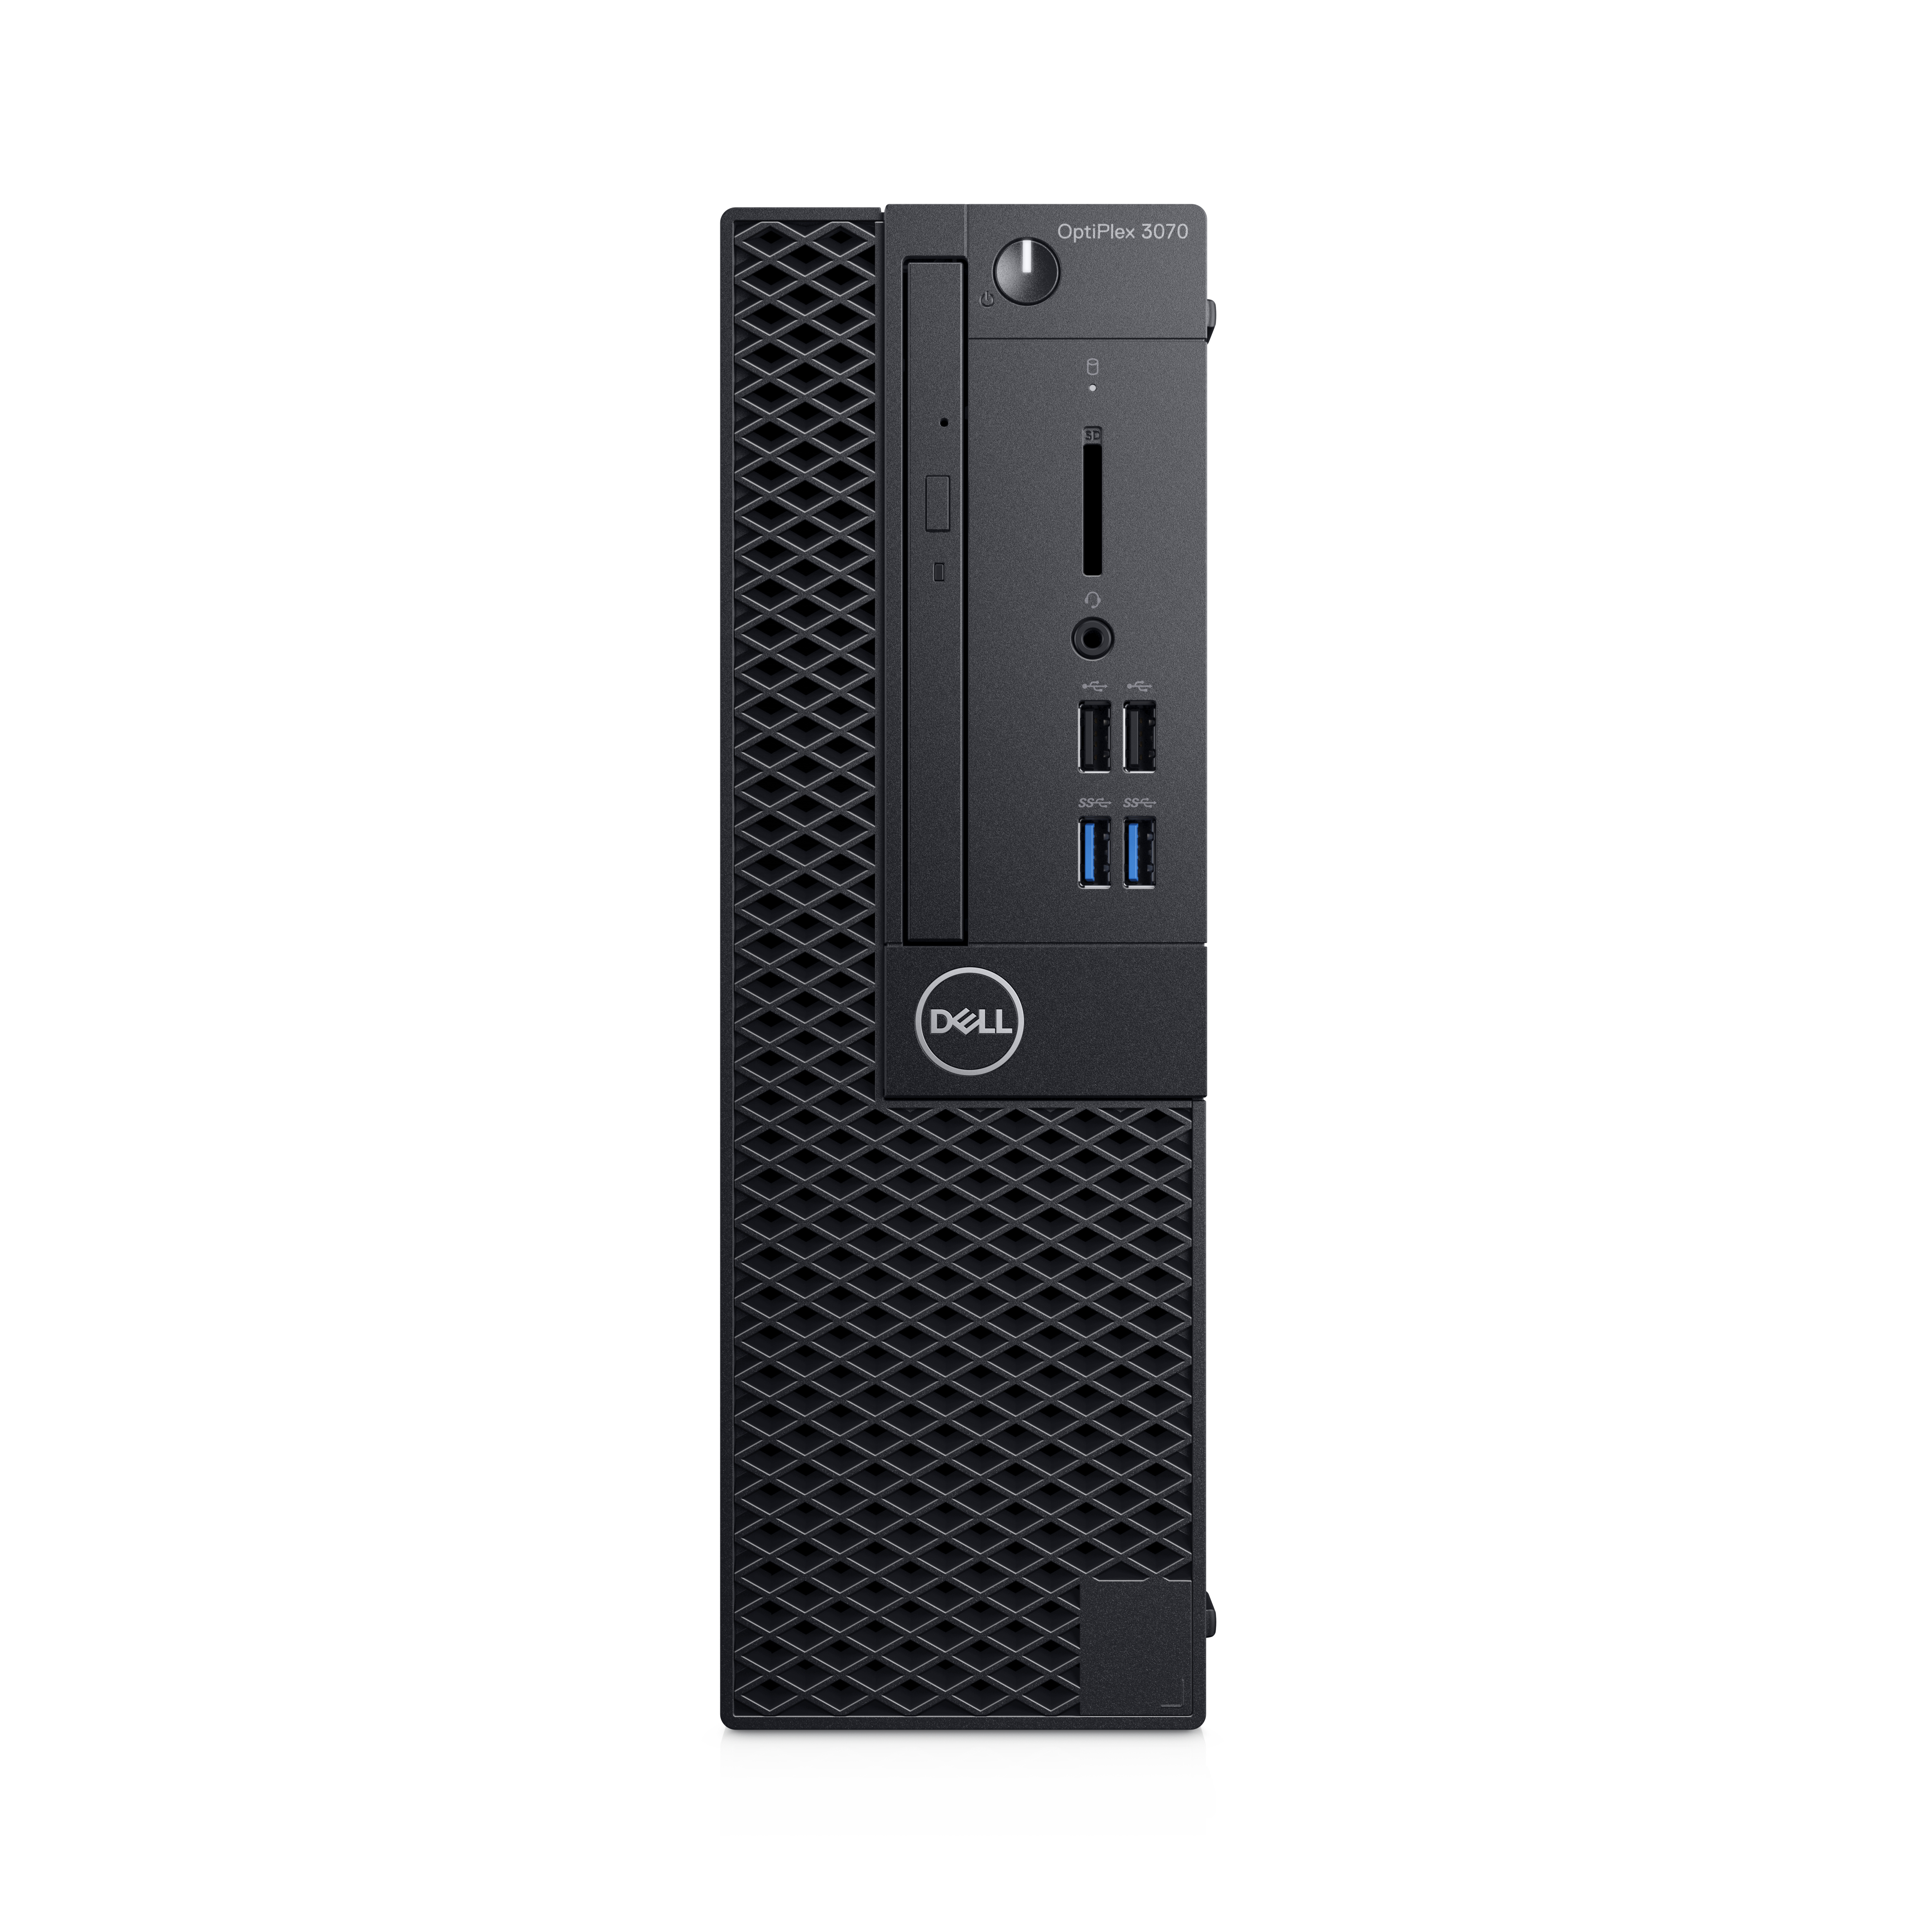 Dell OptiPlex 3070 black